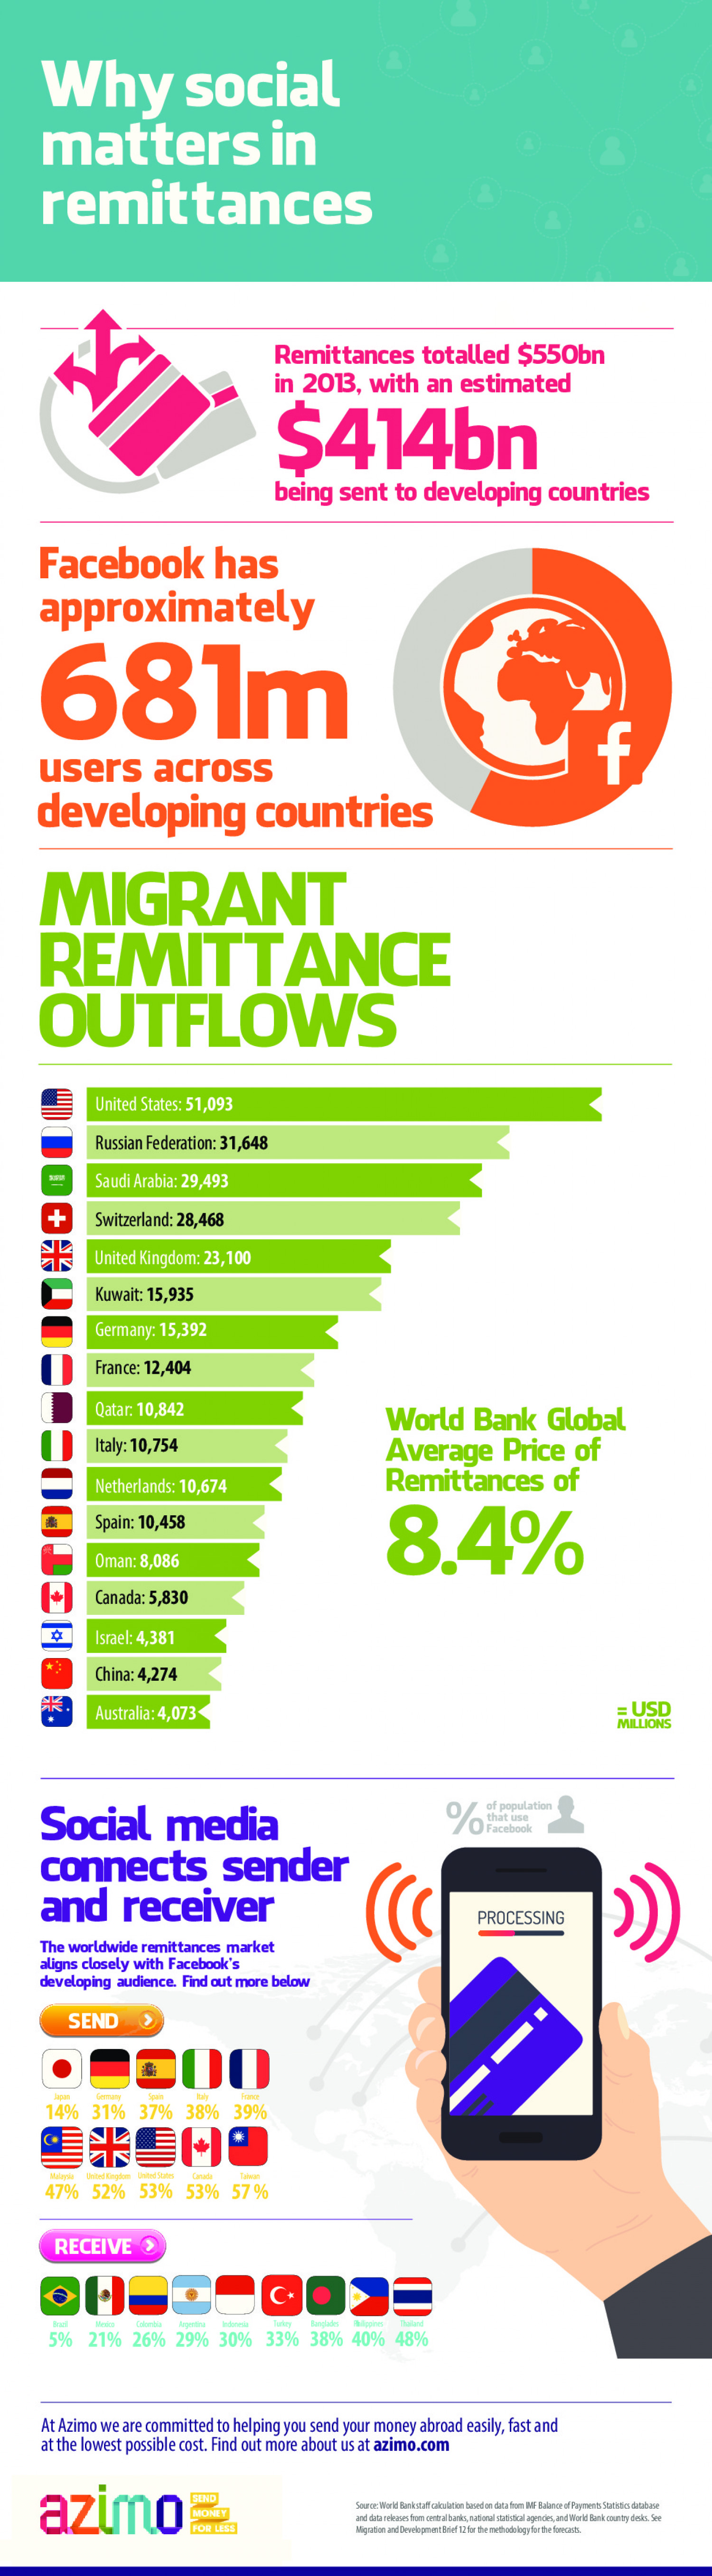 Why Social Matters in Remittances Infographic